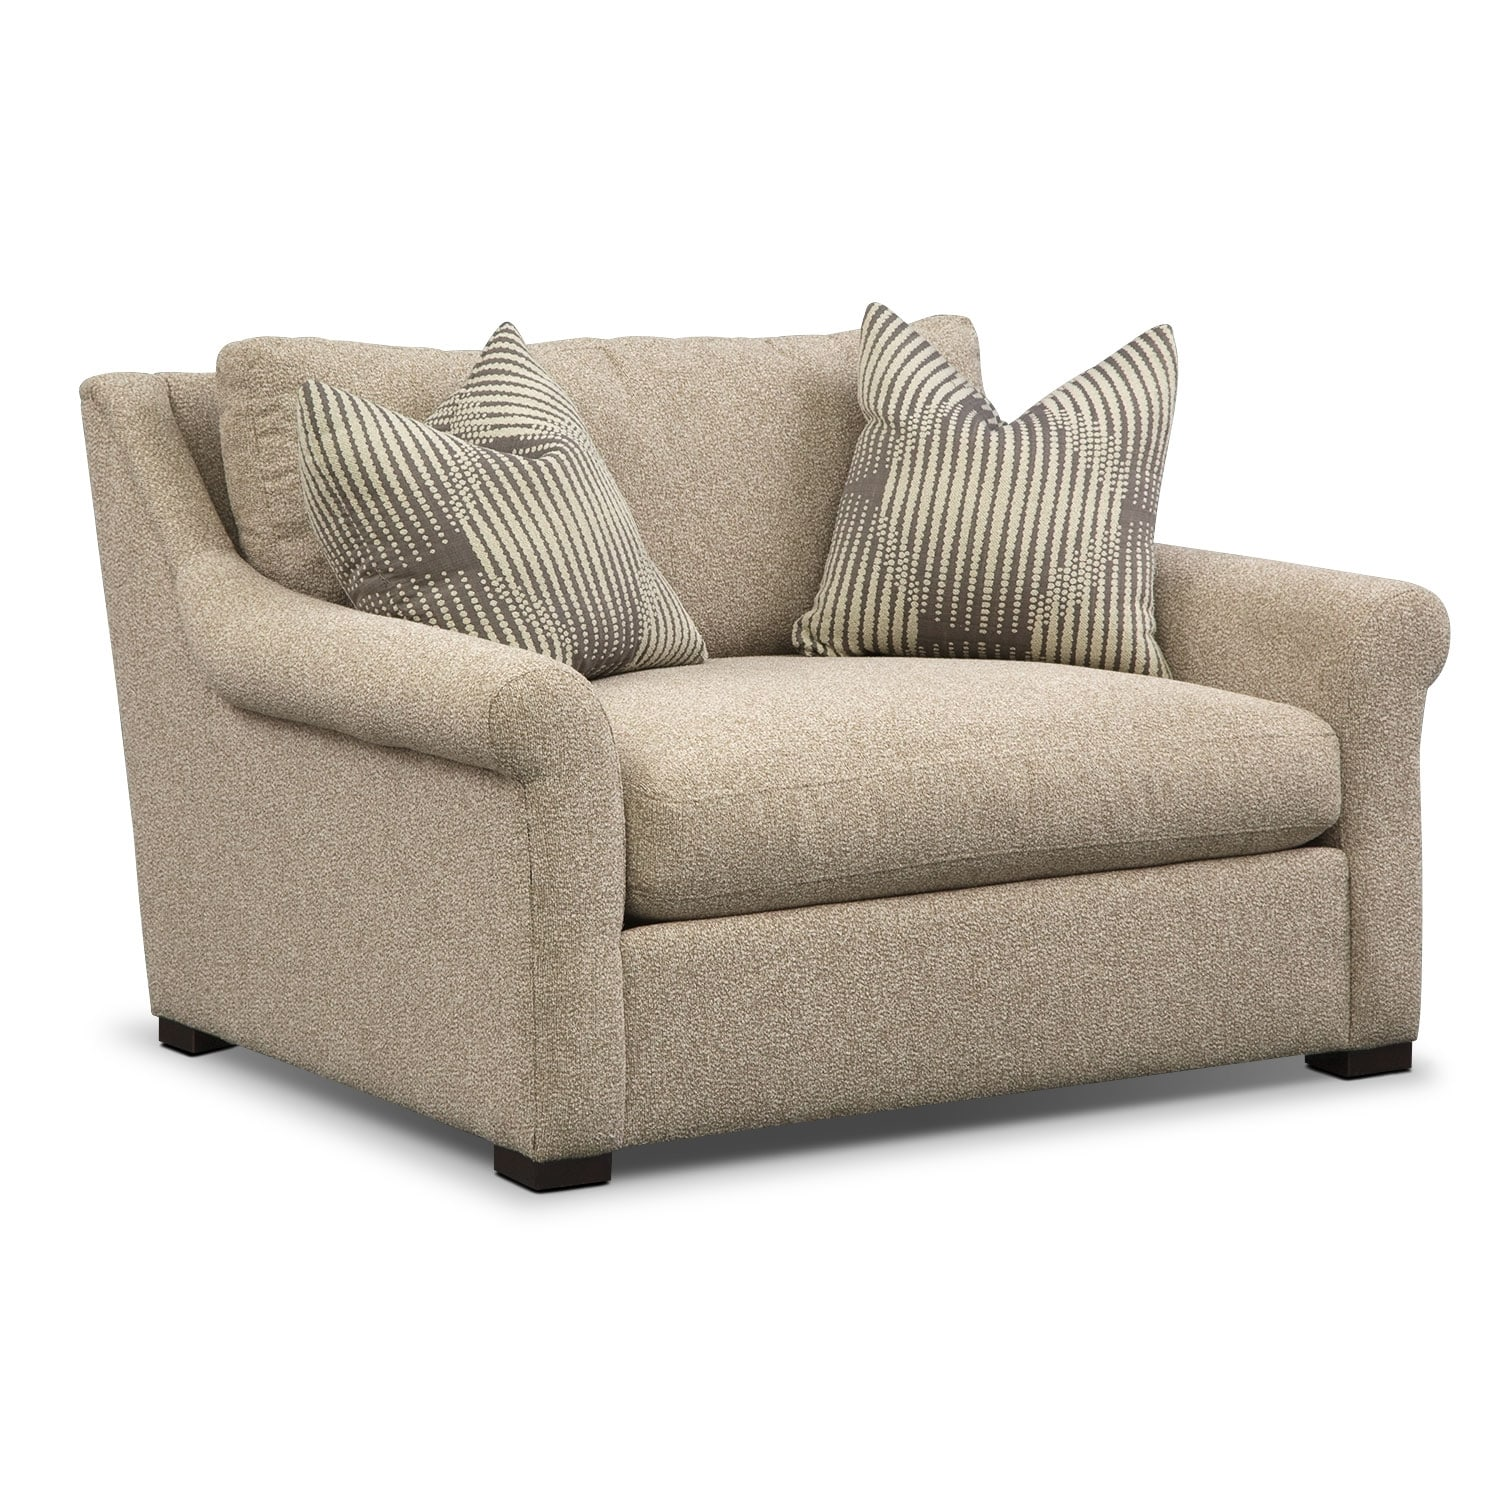 Robertson fort Sofa Loveseat and Chair and a Half Set Beige